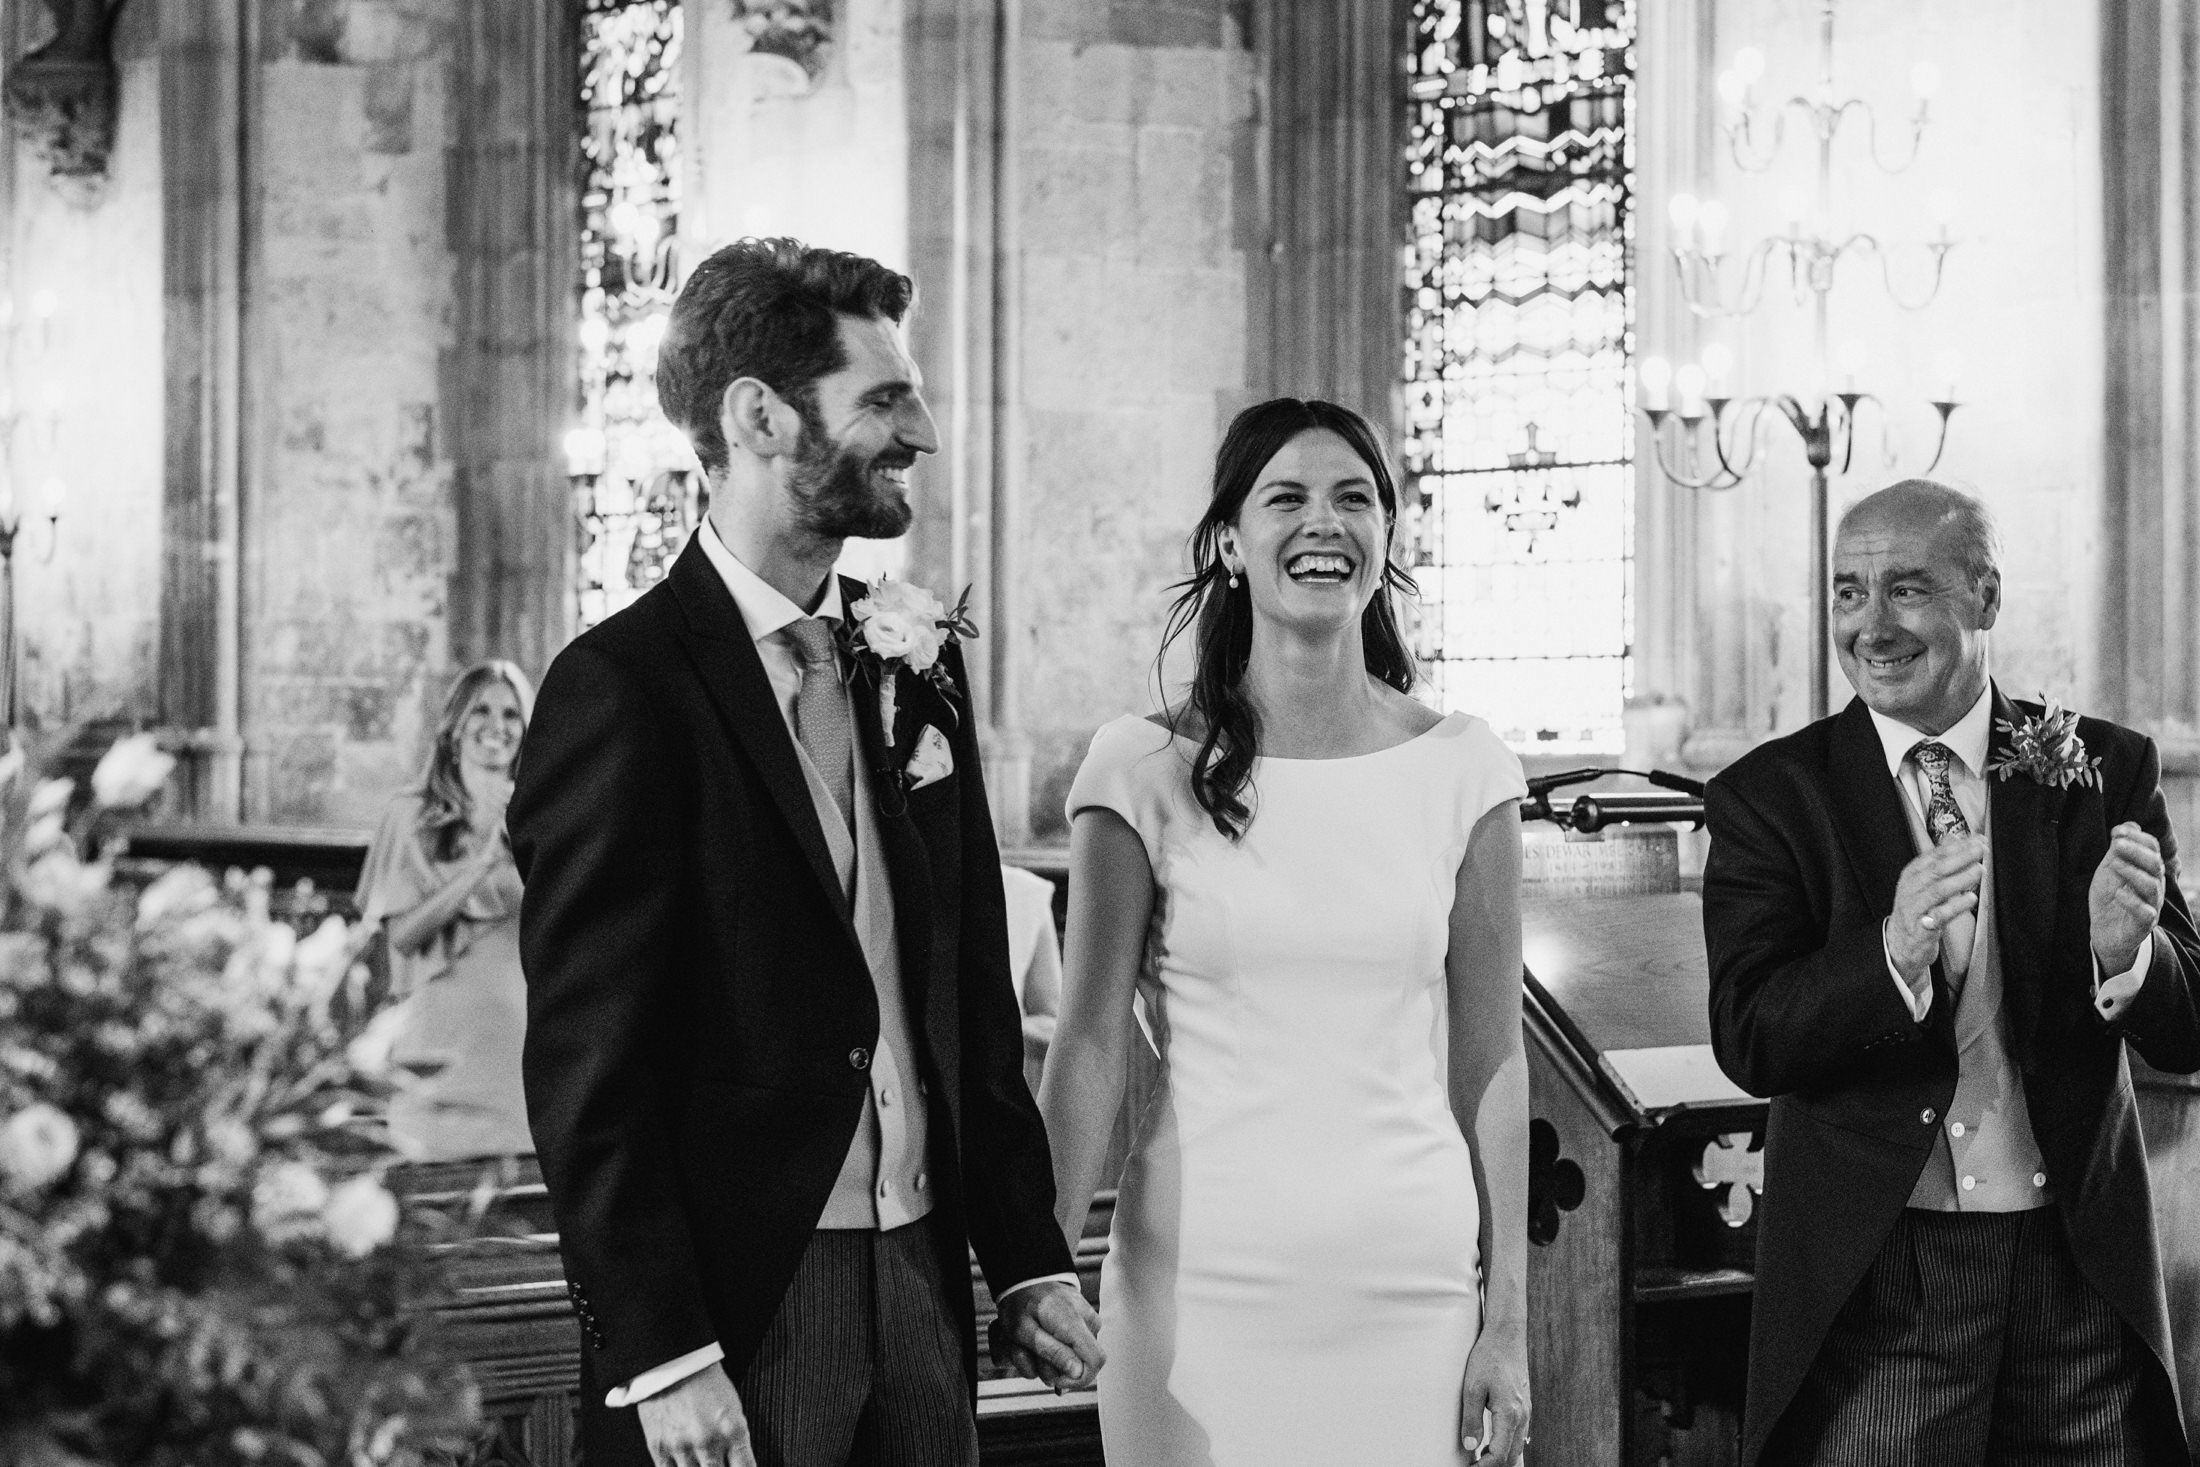 Smiling bride and groom are applauded by their socially distanced wedding guests at a London micro wedding ceremony